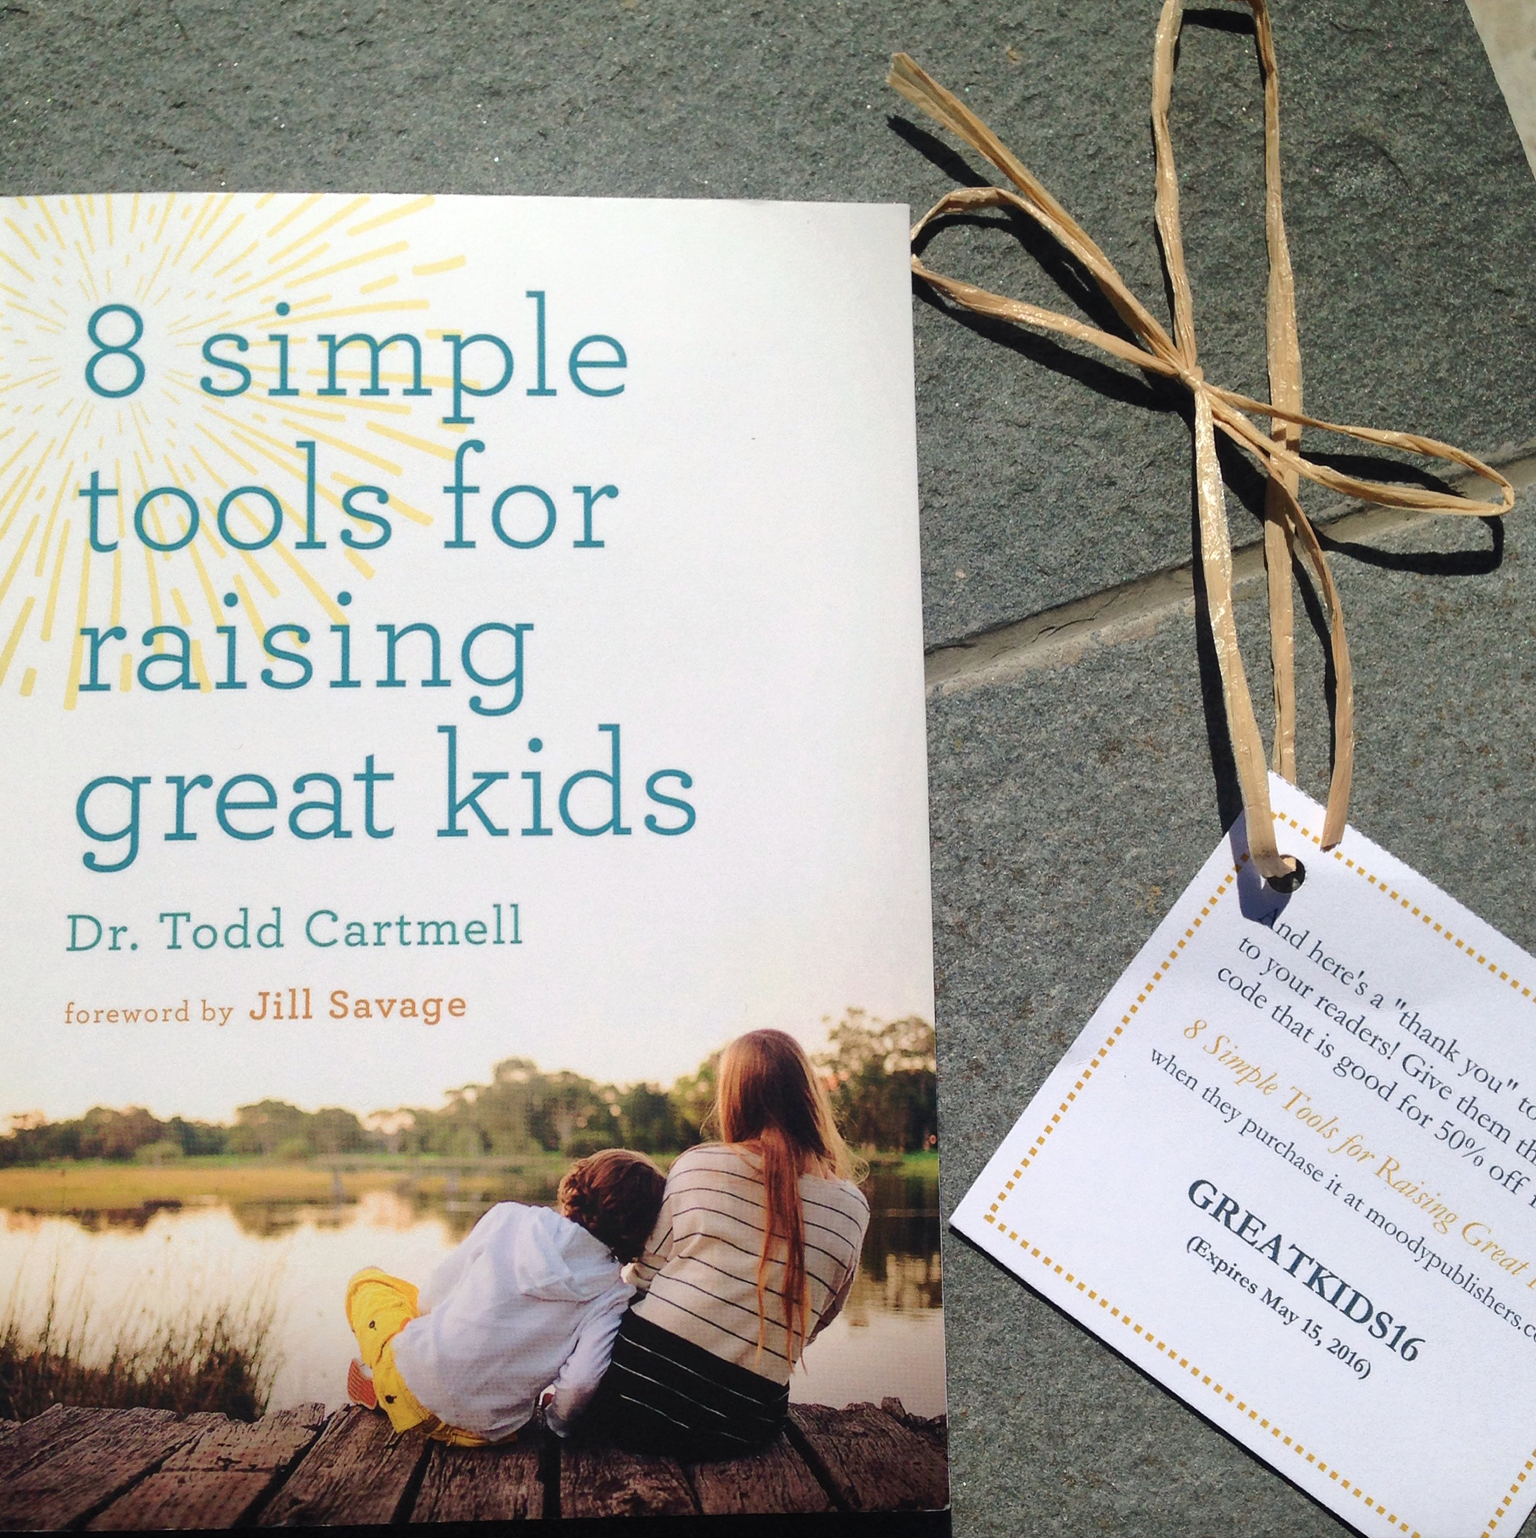 8 Simple Tools for Raising Great Kids by Dr Todd Cartmell